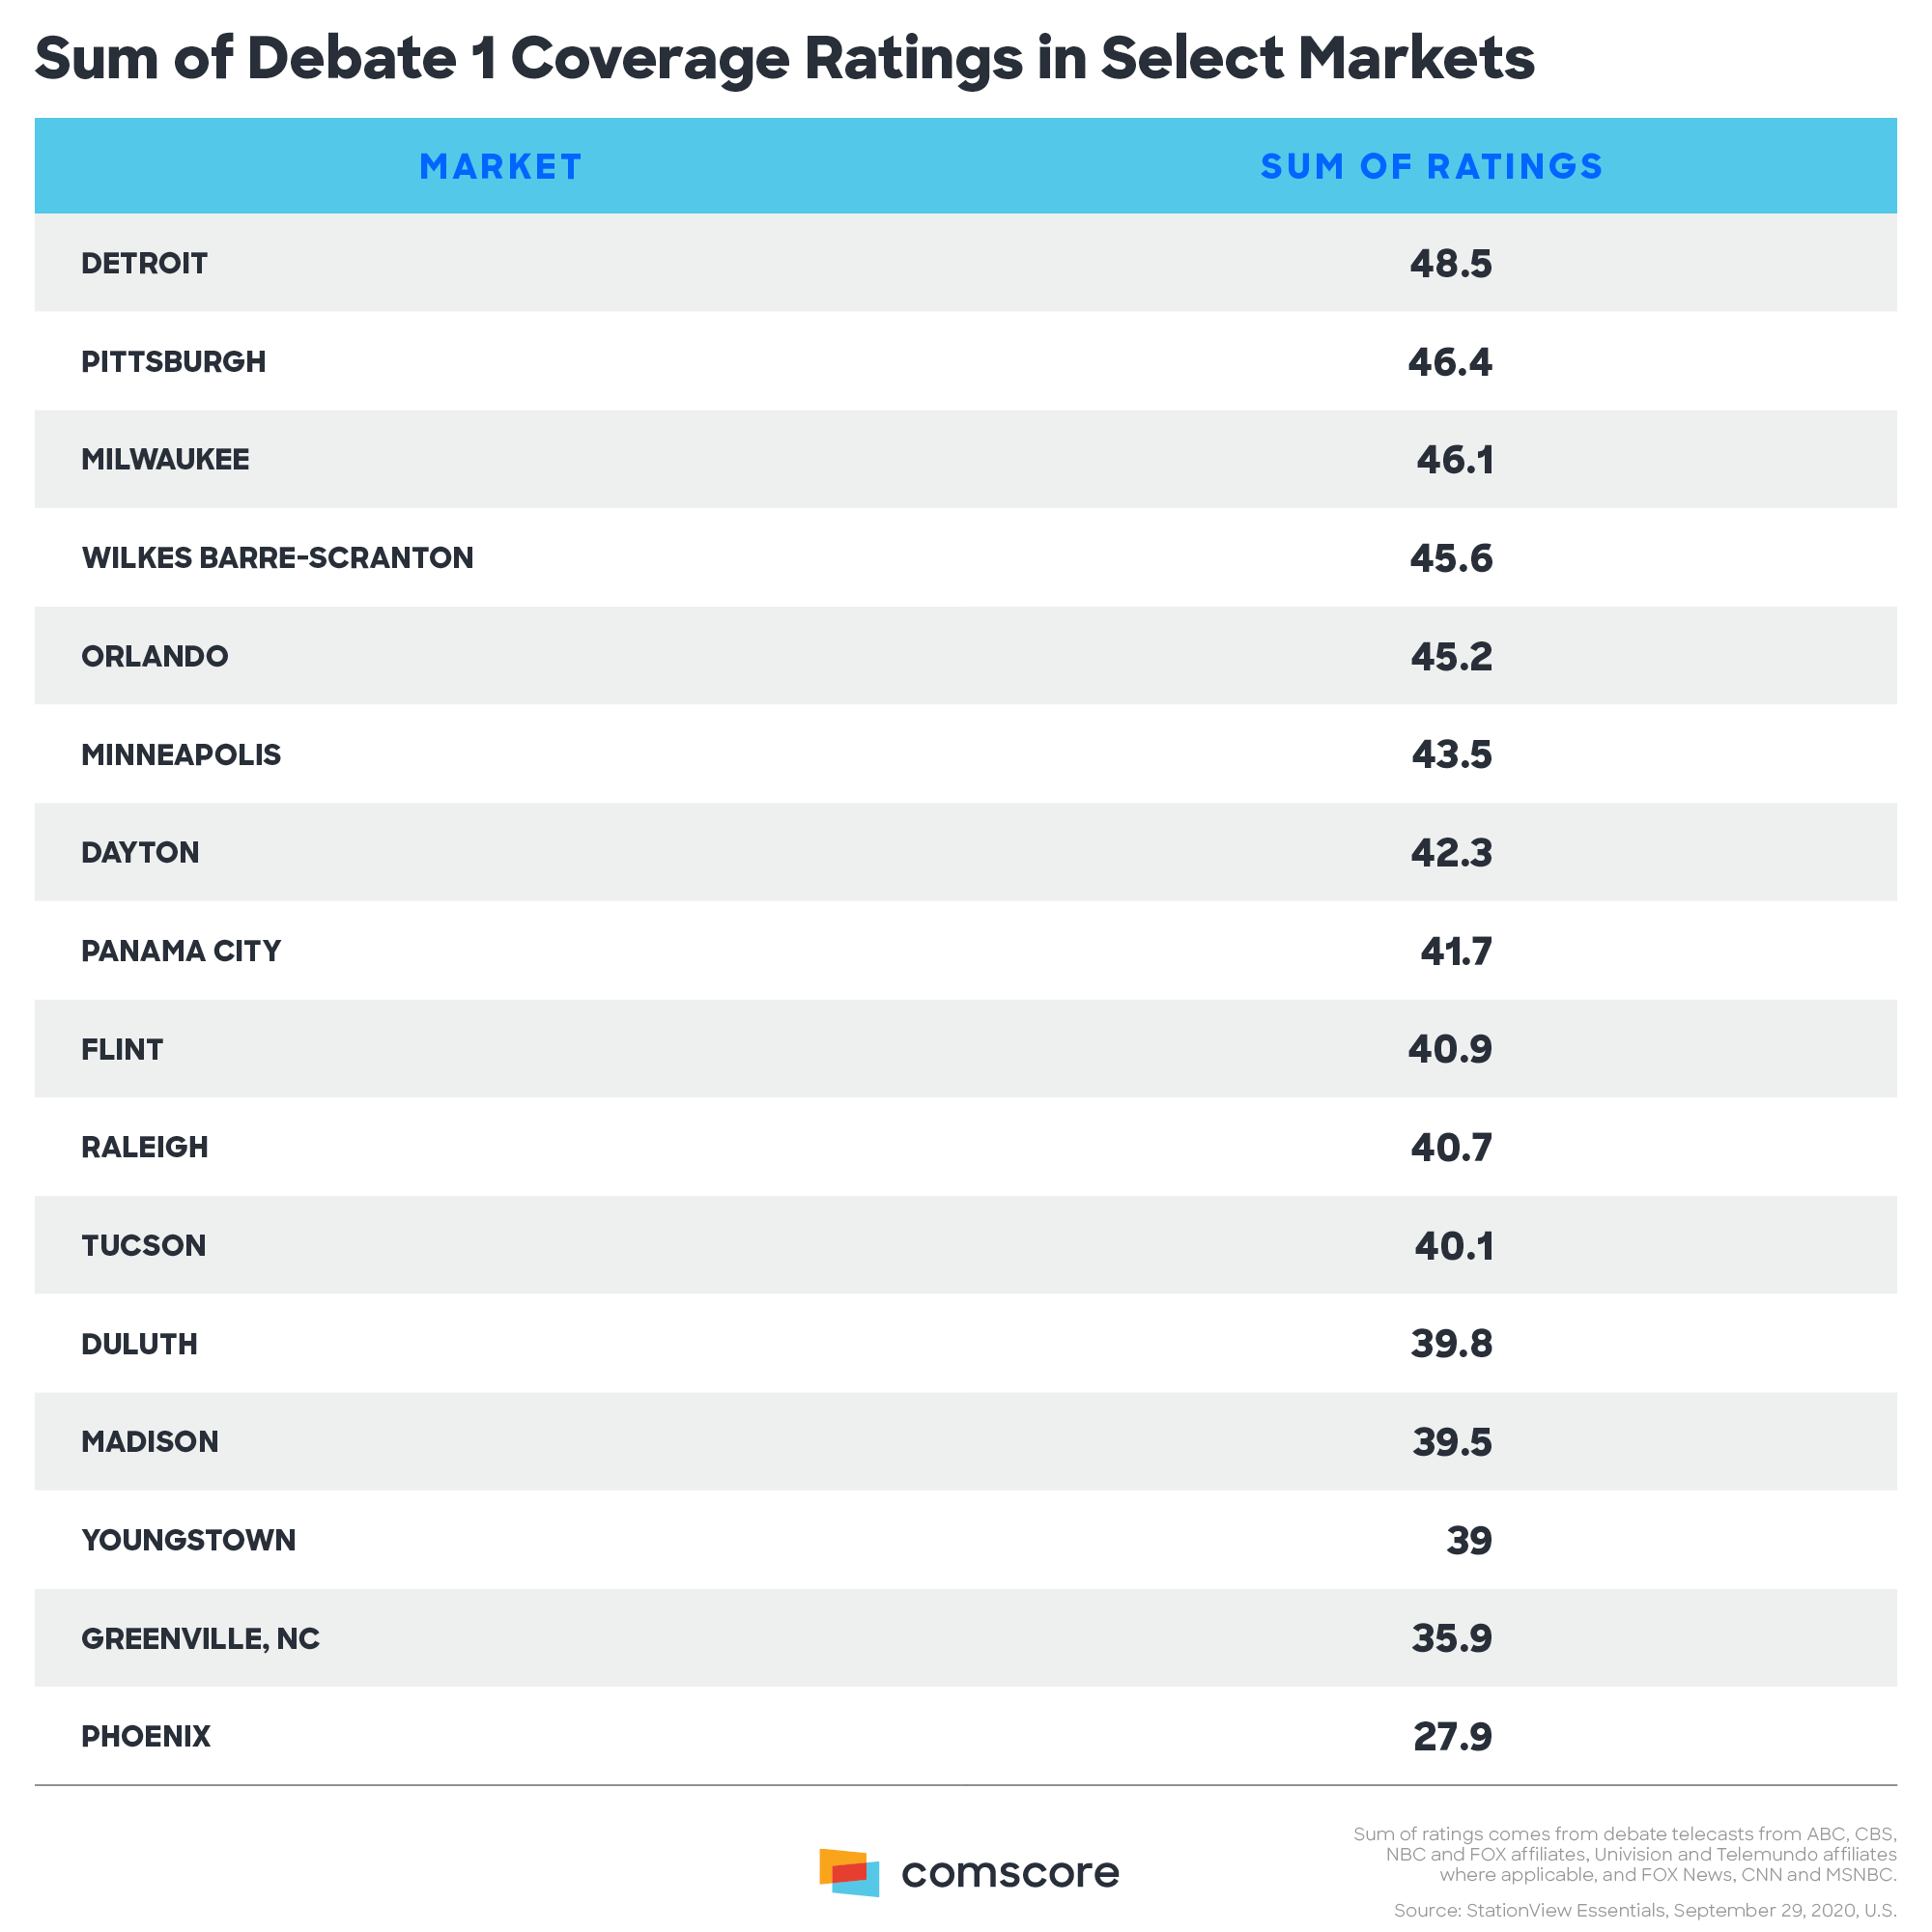 Sum of Debate 1 Coverage Ratings in Select Markets.png